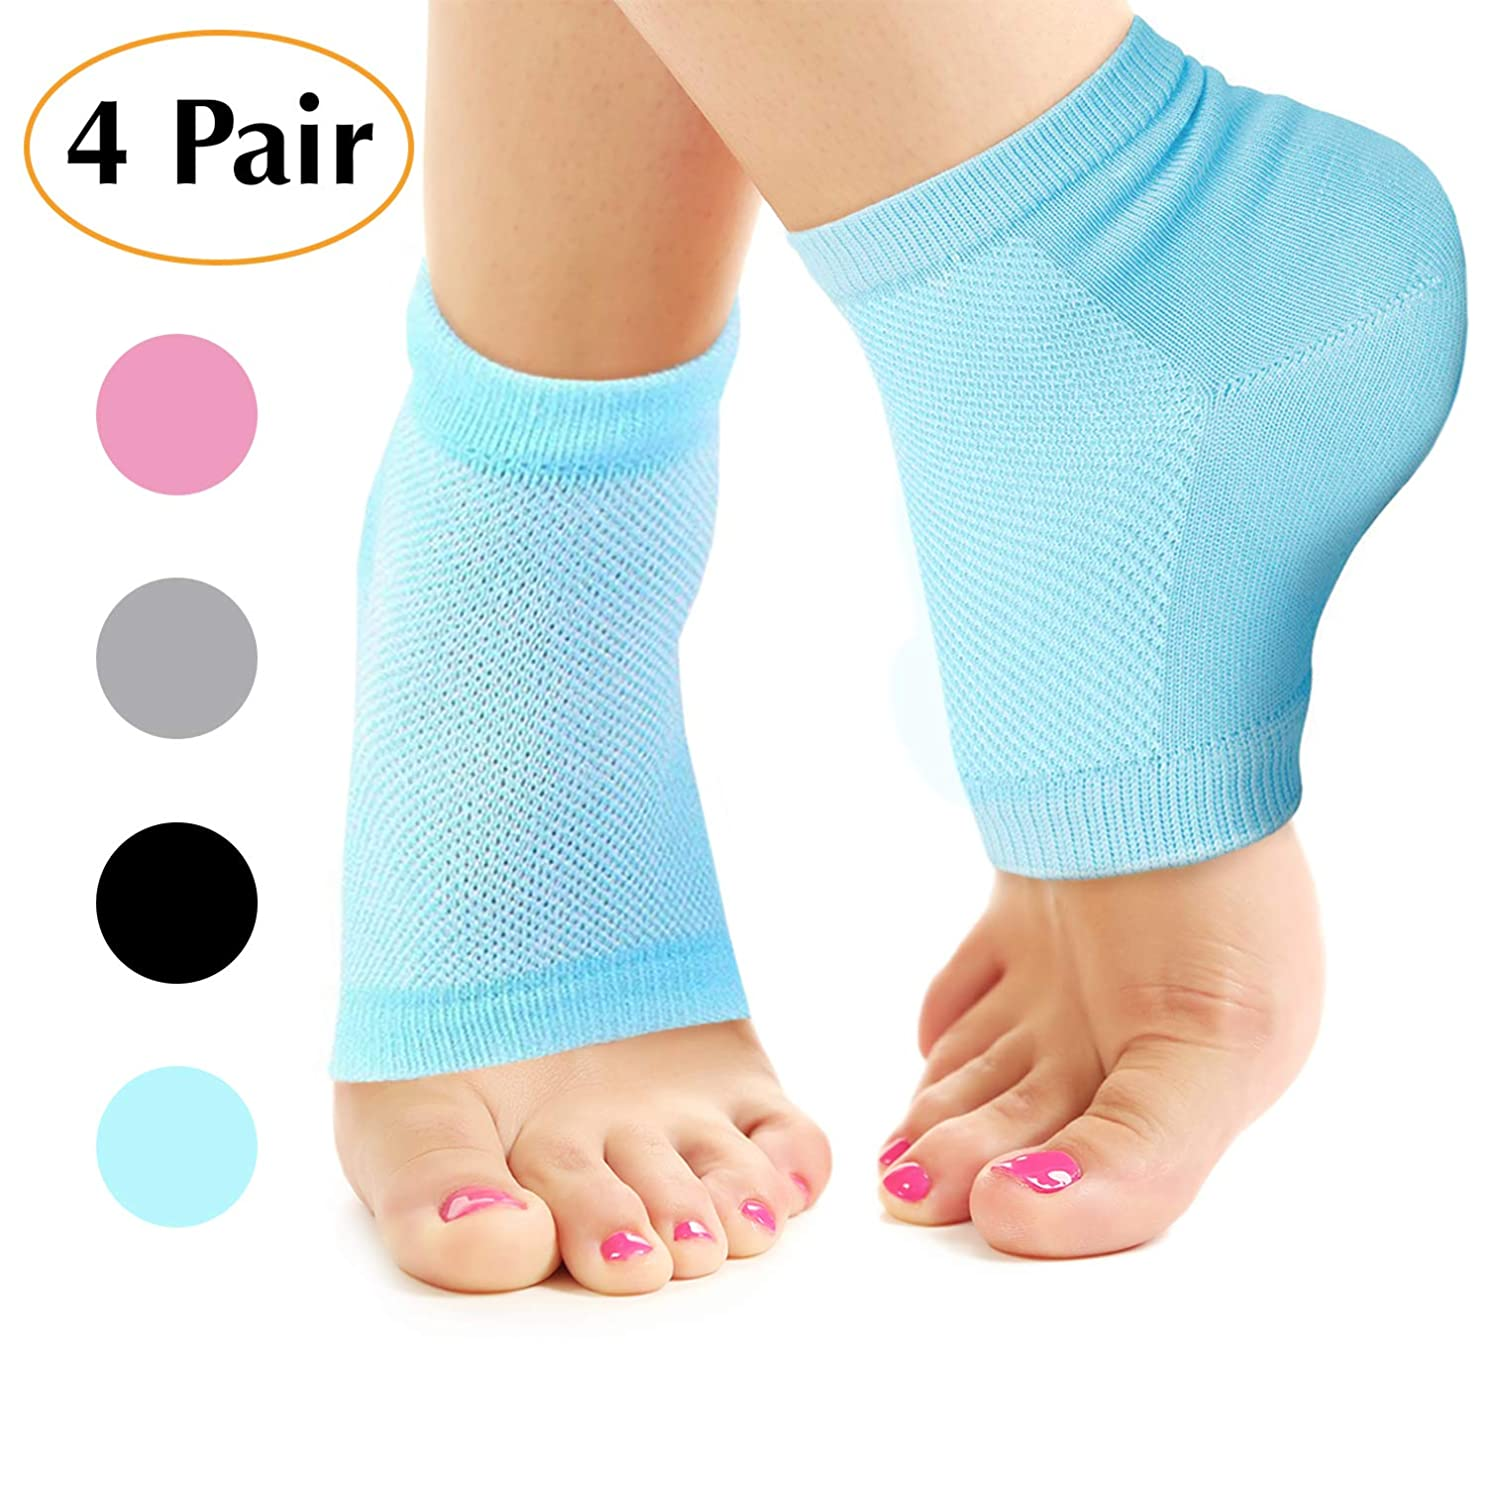 Nado Care Moisturizing Socks Lotion Gel for Dry Cracked Heels 4 Pack, Spa Gel Socks Humectant Moisturizer Heel Balm Foot Treatment Care Heel Softener Compression Cotton - Pink, Blue, Grey and Black …